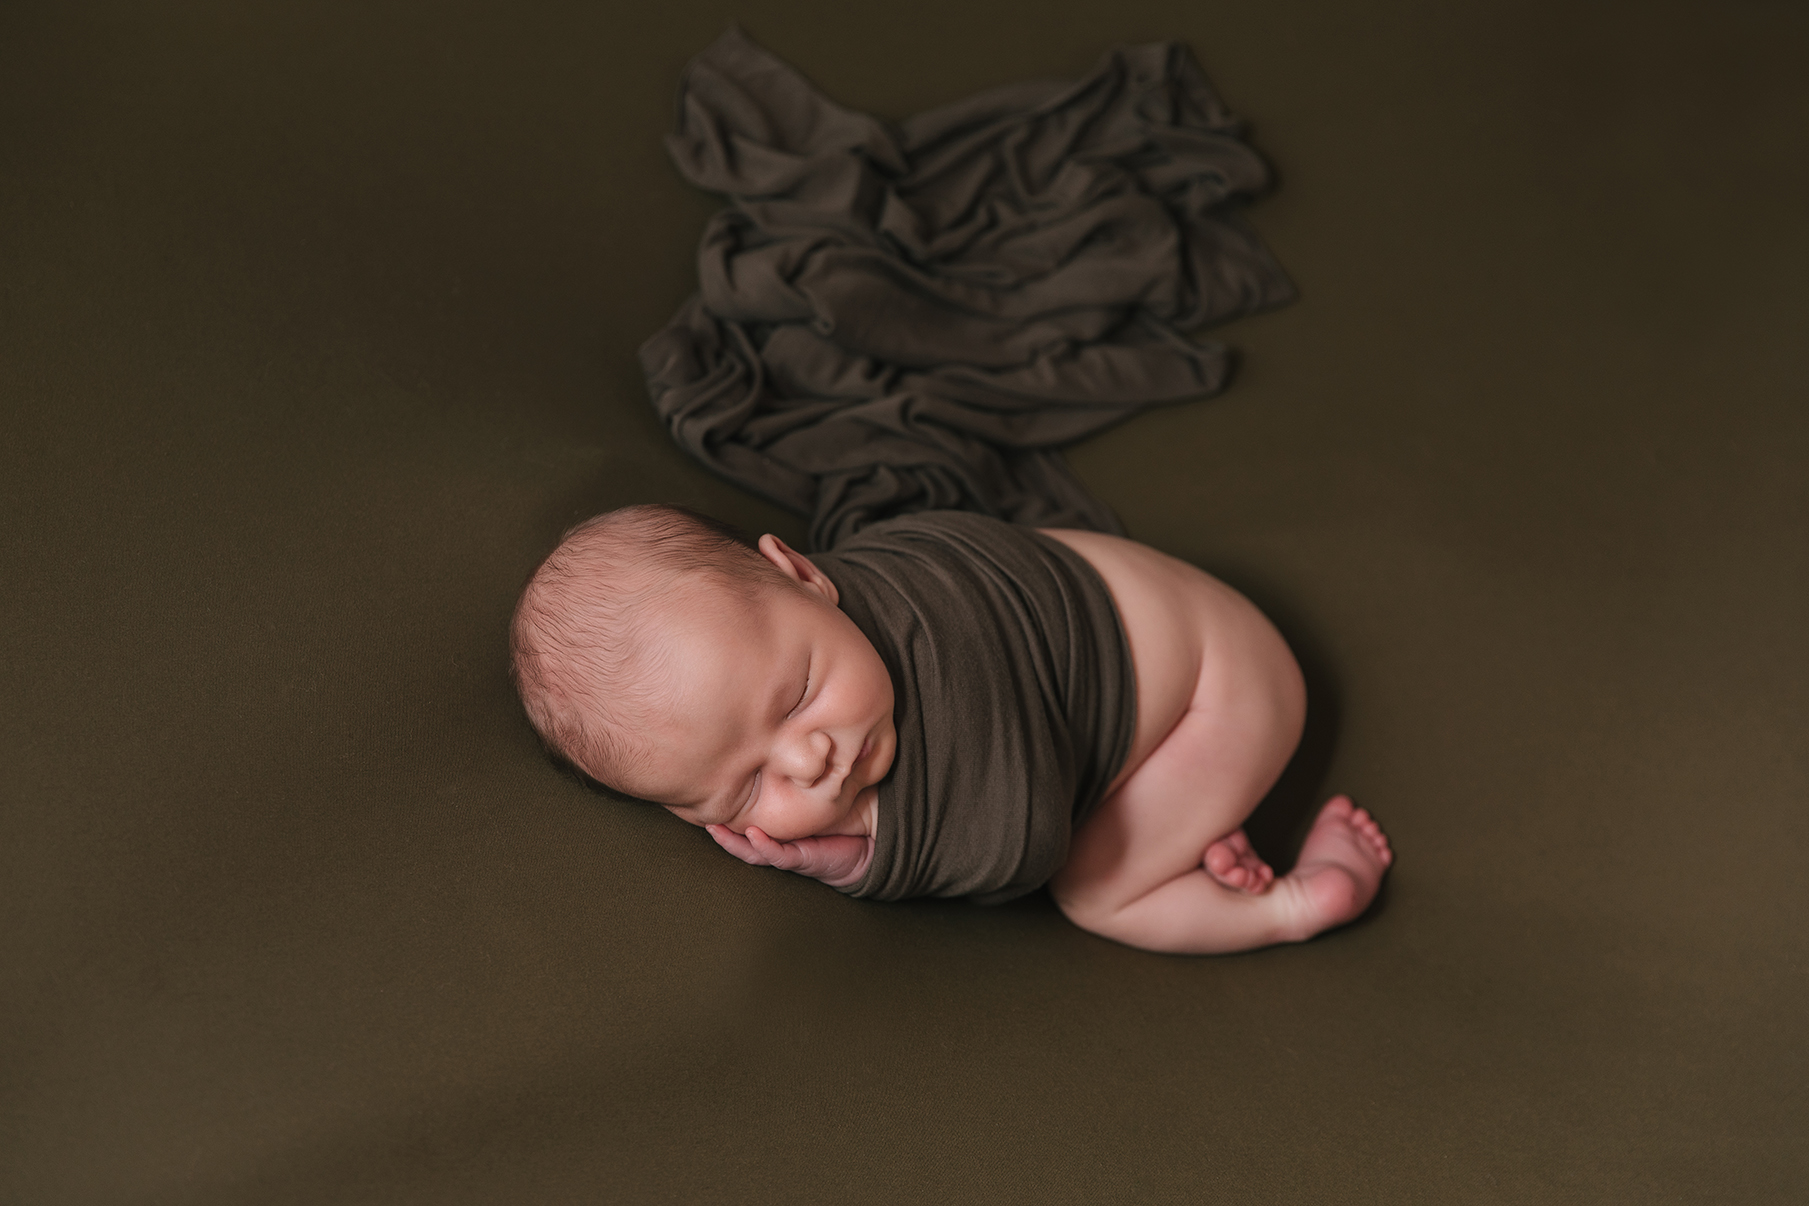 Kinsman_Ohio_Baby_Boy_Taco_Pose_Newborn_photography_by_Christie_Leigh_Photo_in_Cortland_Ohio-018.jpg